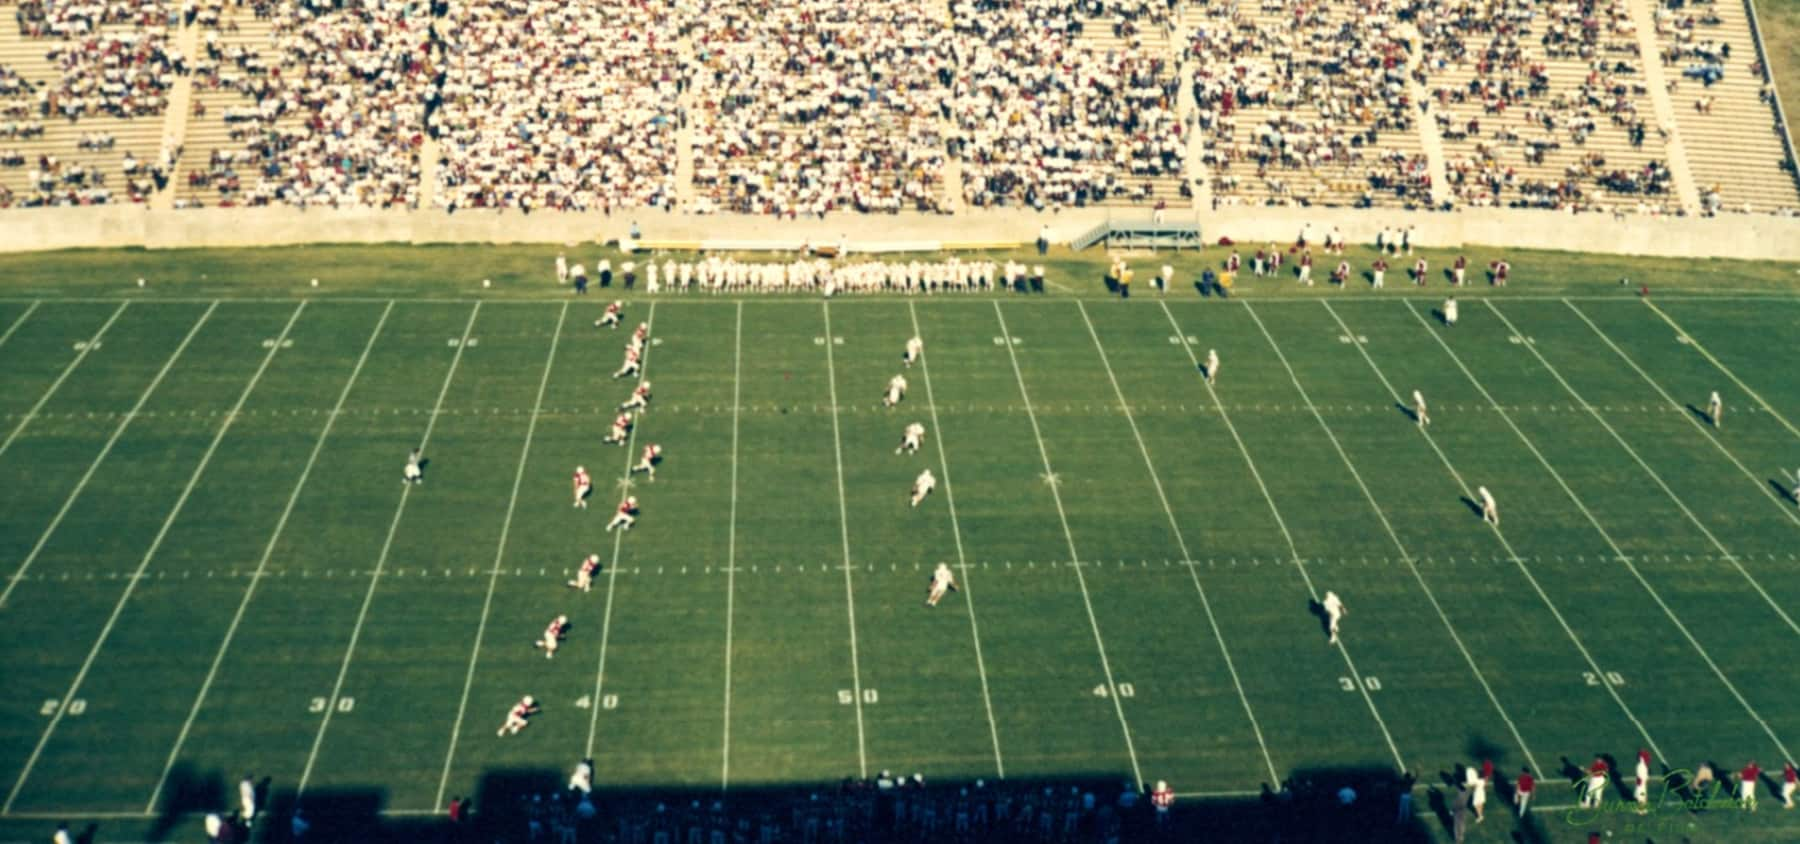 Kickoff on opening day at Carter-Finley Stadium